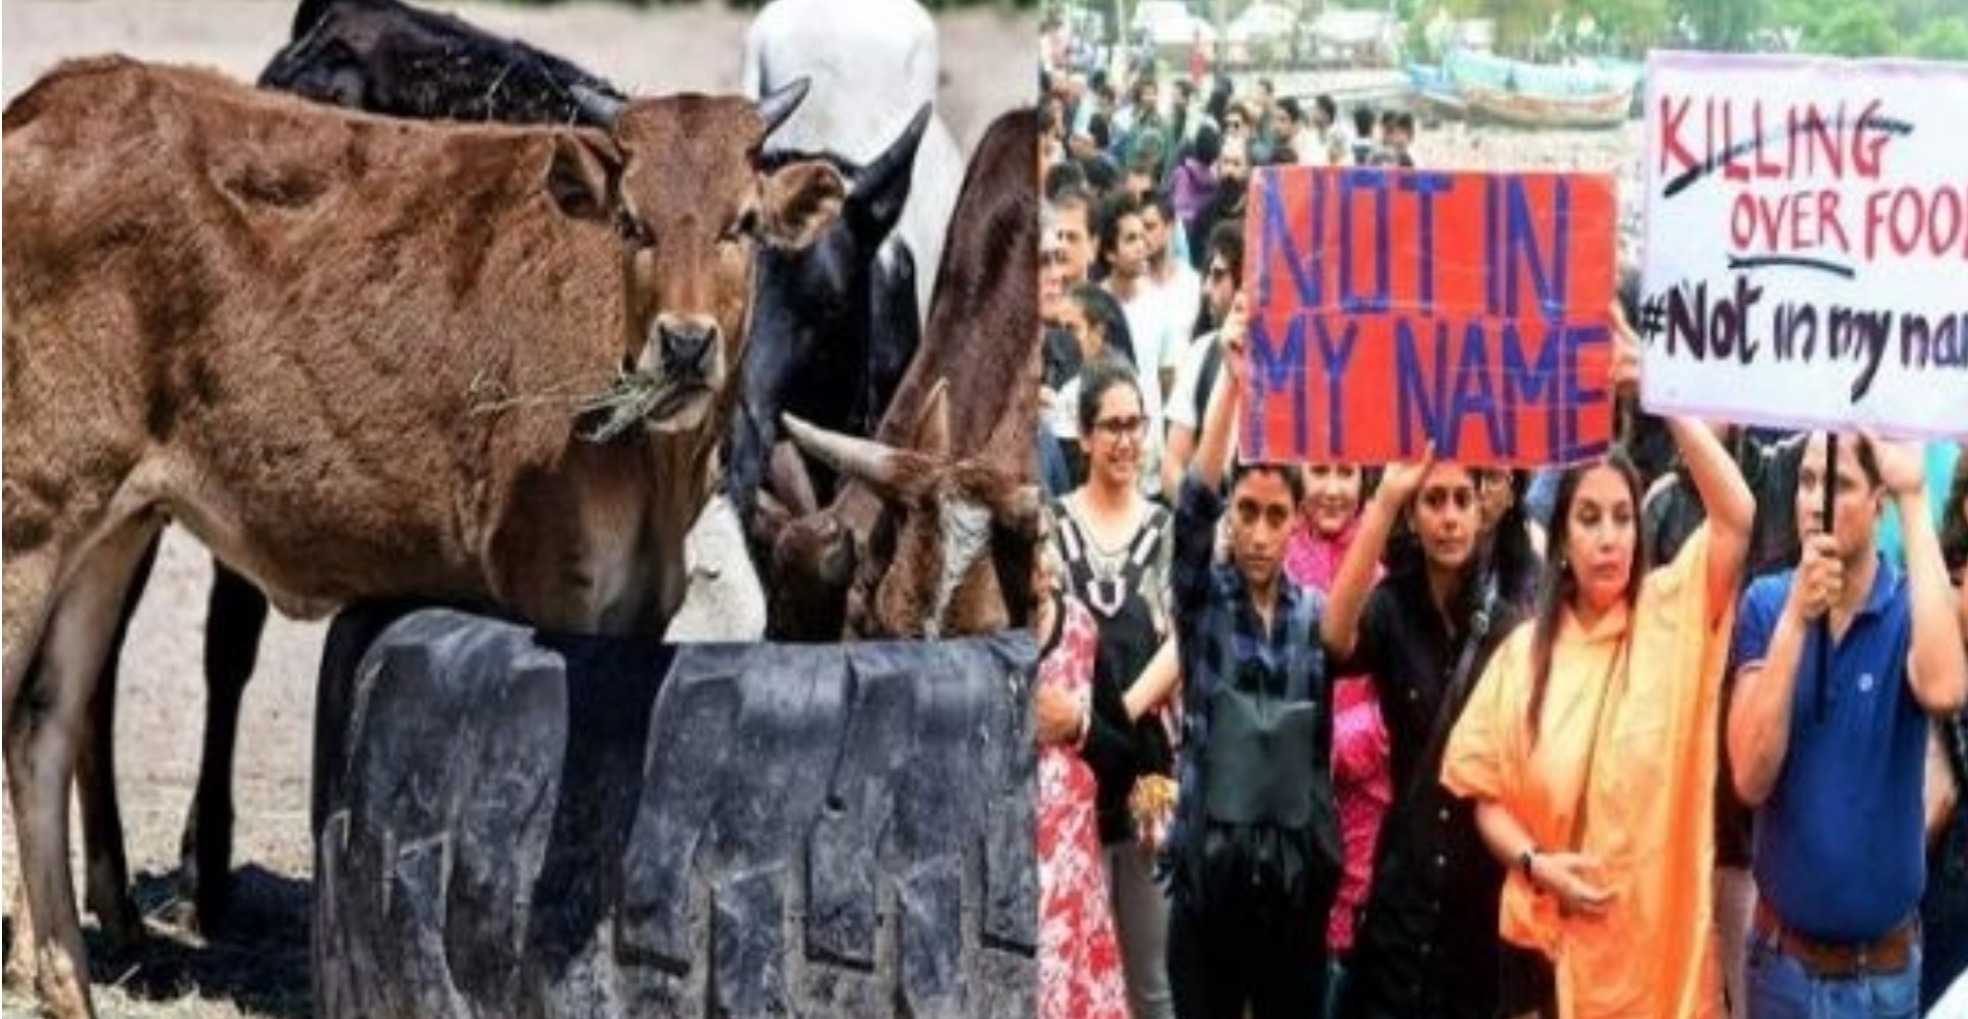 Cow Vigilantism is Unacceptable and Not to be Linked with Religion: SC